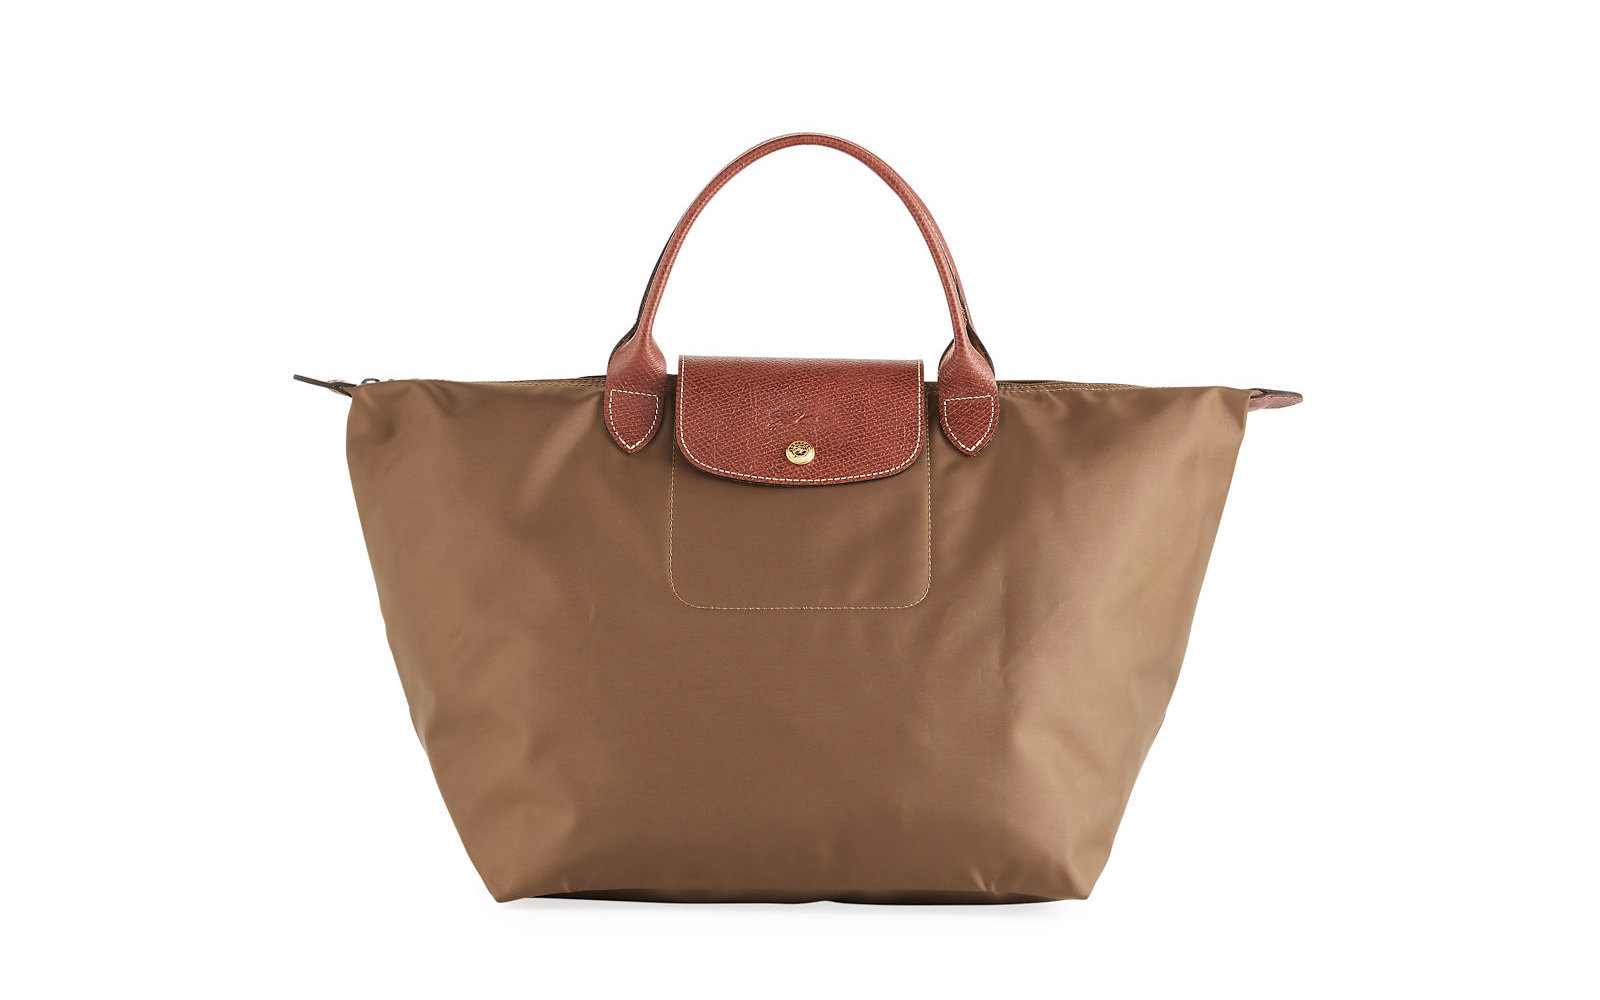 Longchamps Best Travel Bags Are Majorly On Sale Right Now Longchamp Le Pliage Neo Small Medium Tote Bag In Khaki